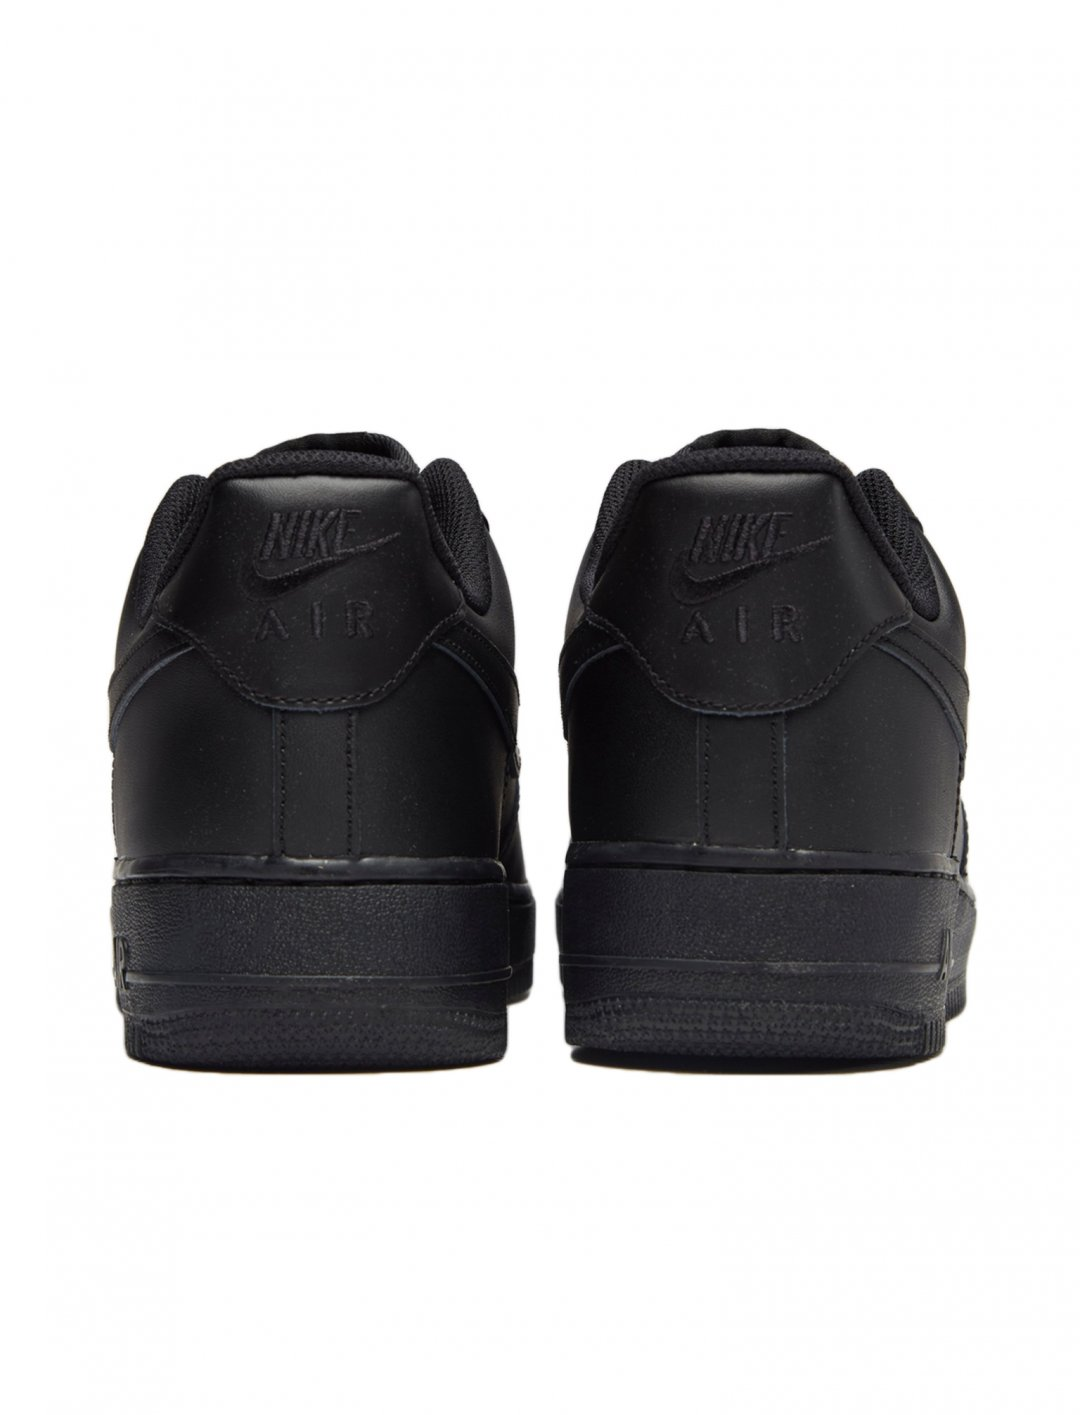 6a52fa6ee99 J Styles Sneakers, Nike - Fake Nails